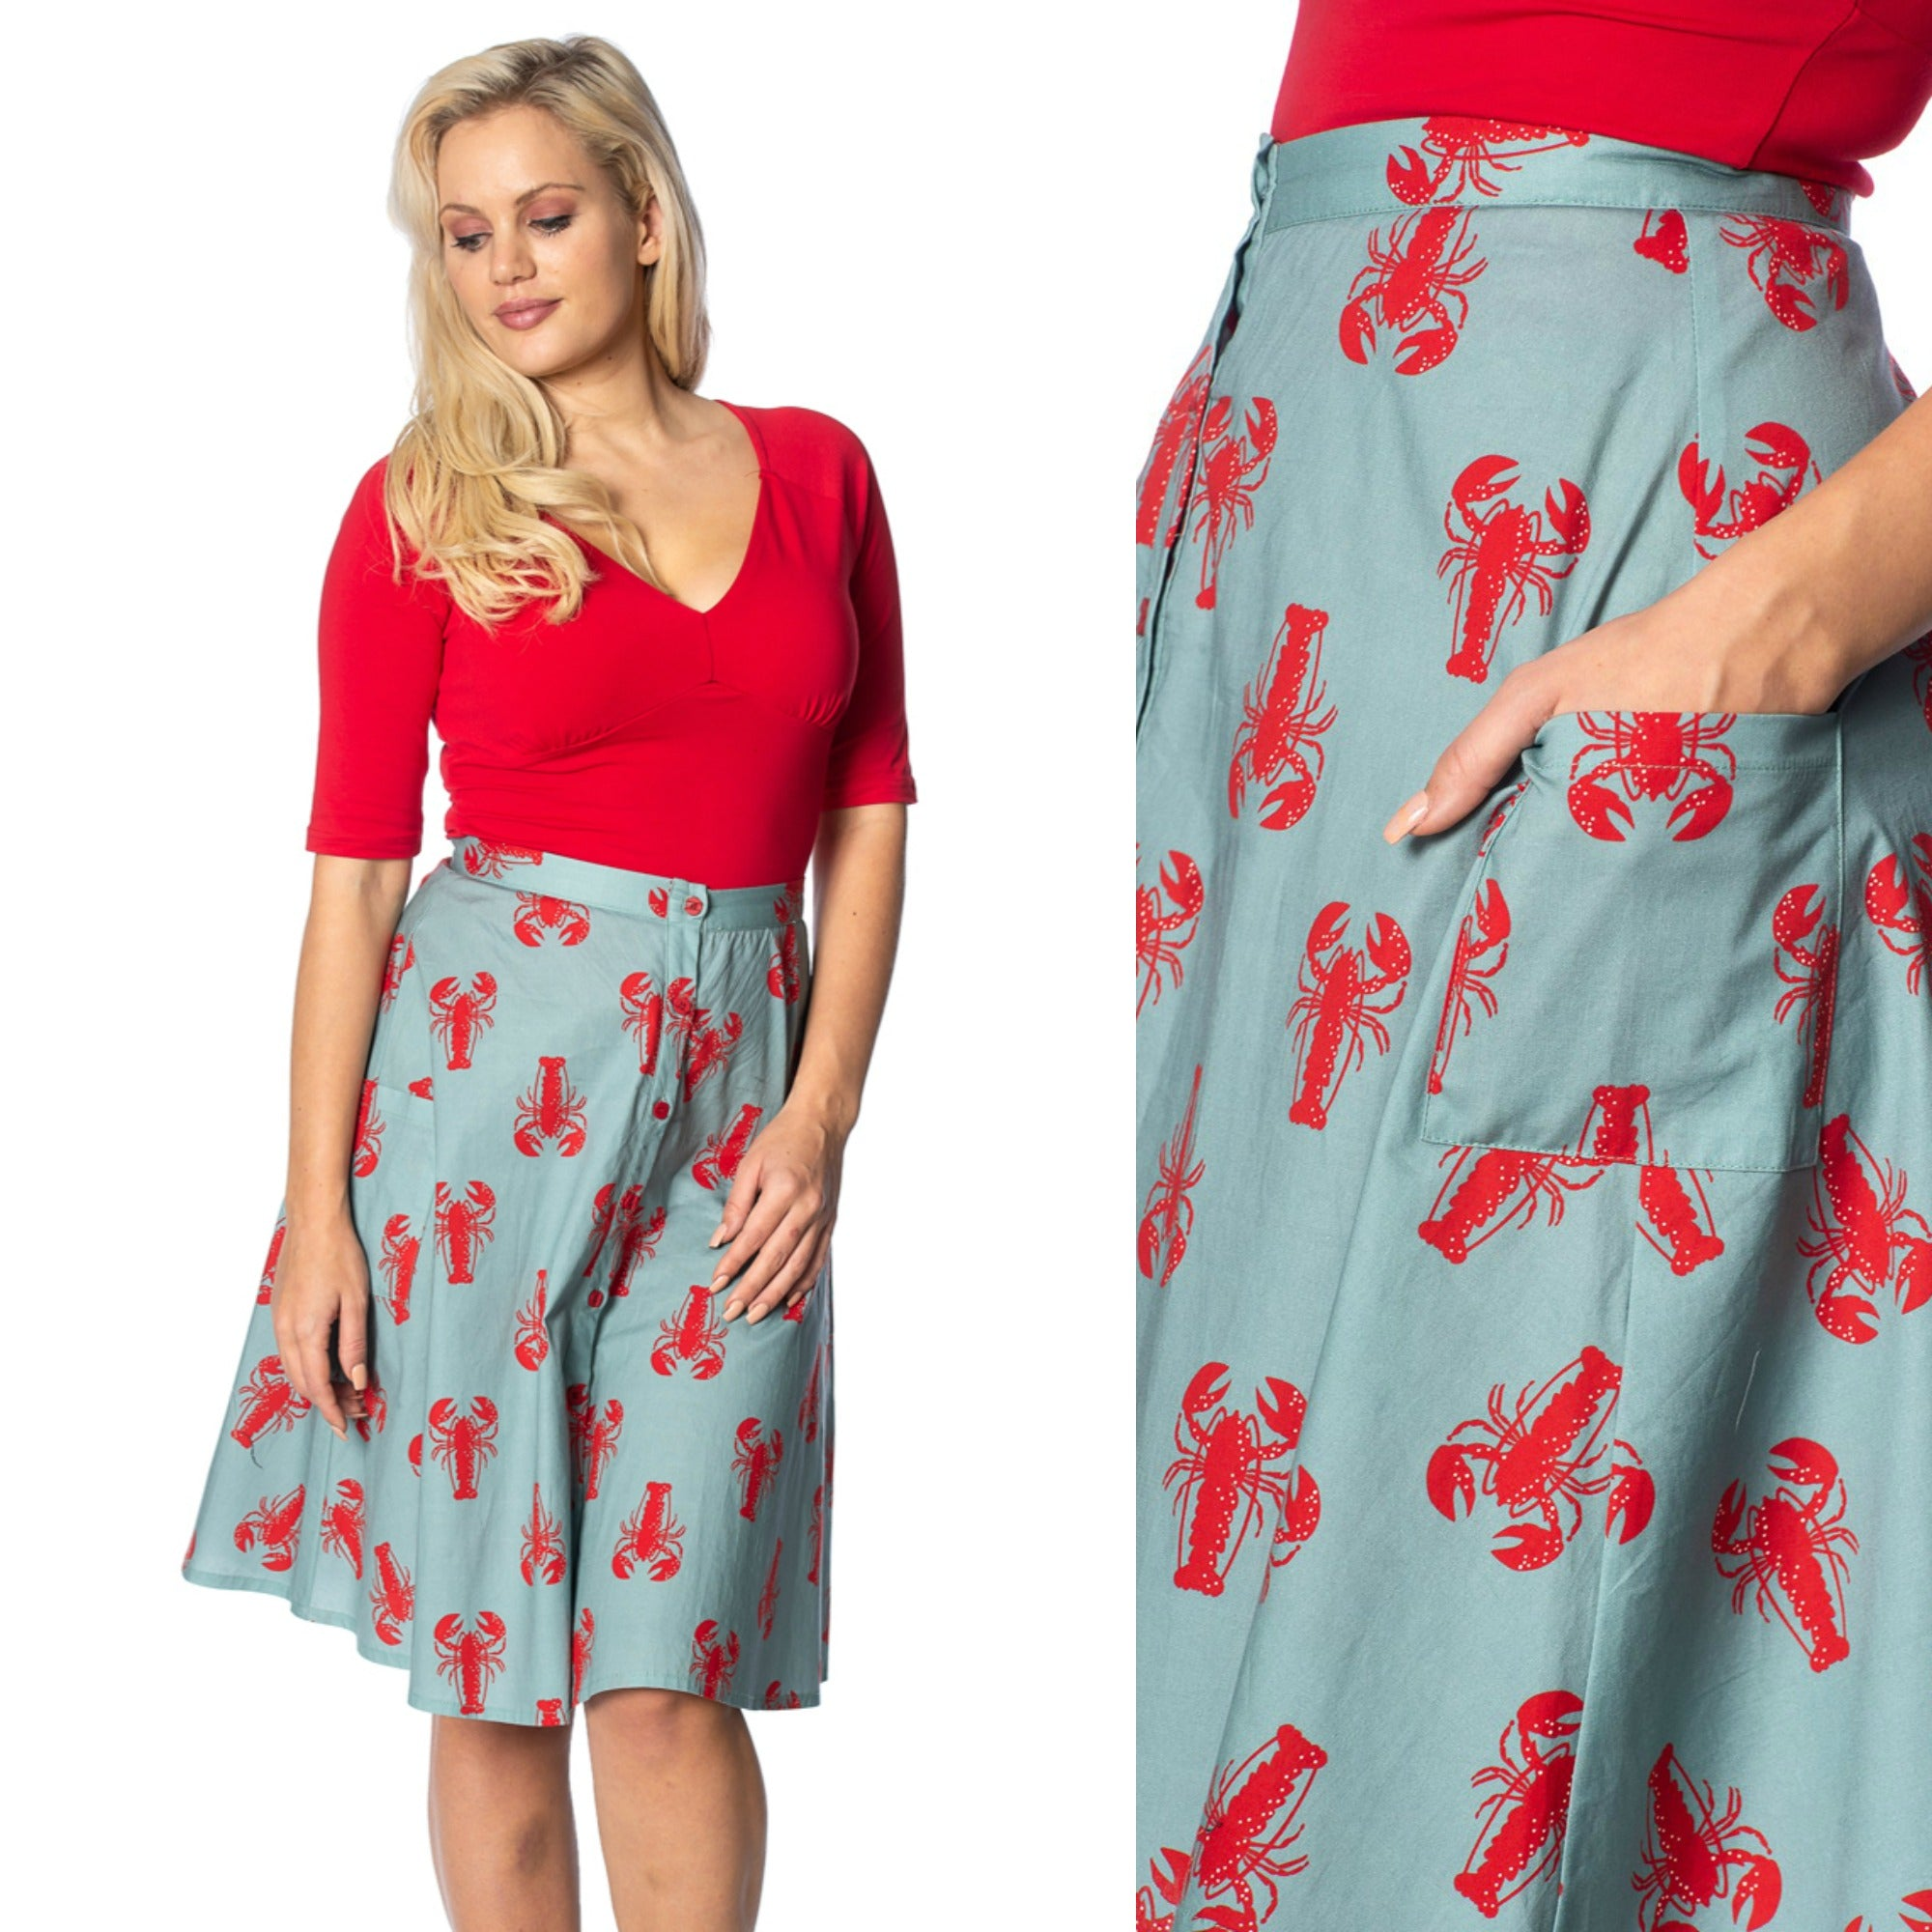 Lobster Love Skirt By Banned Apparel